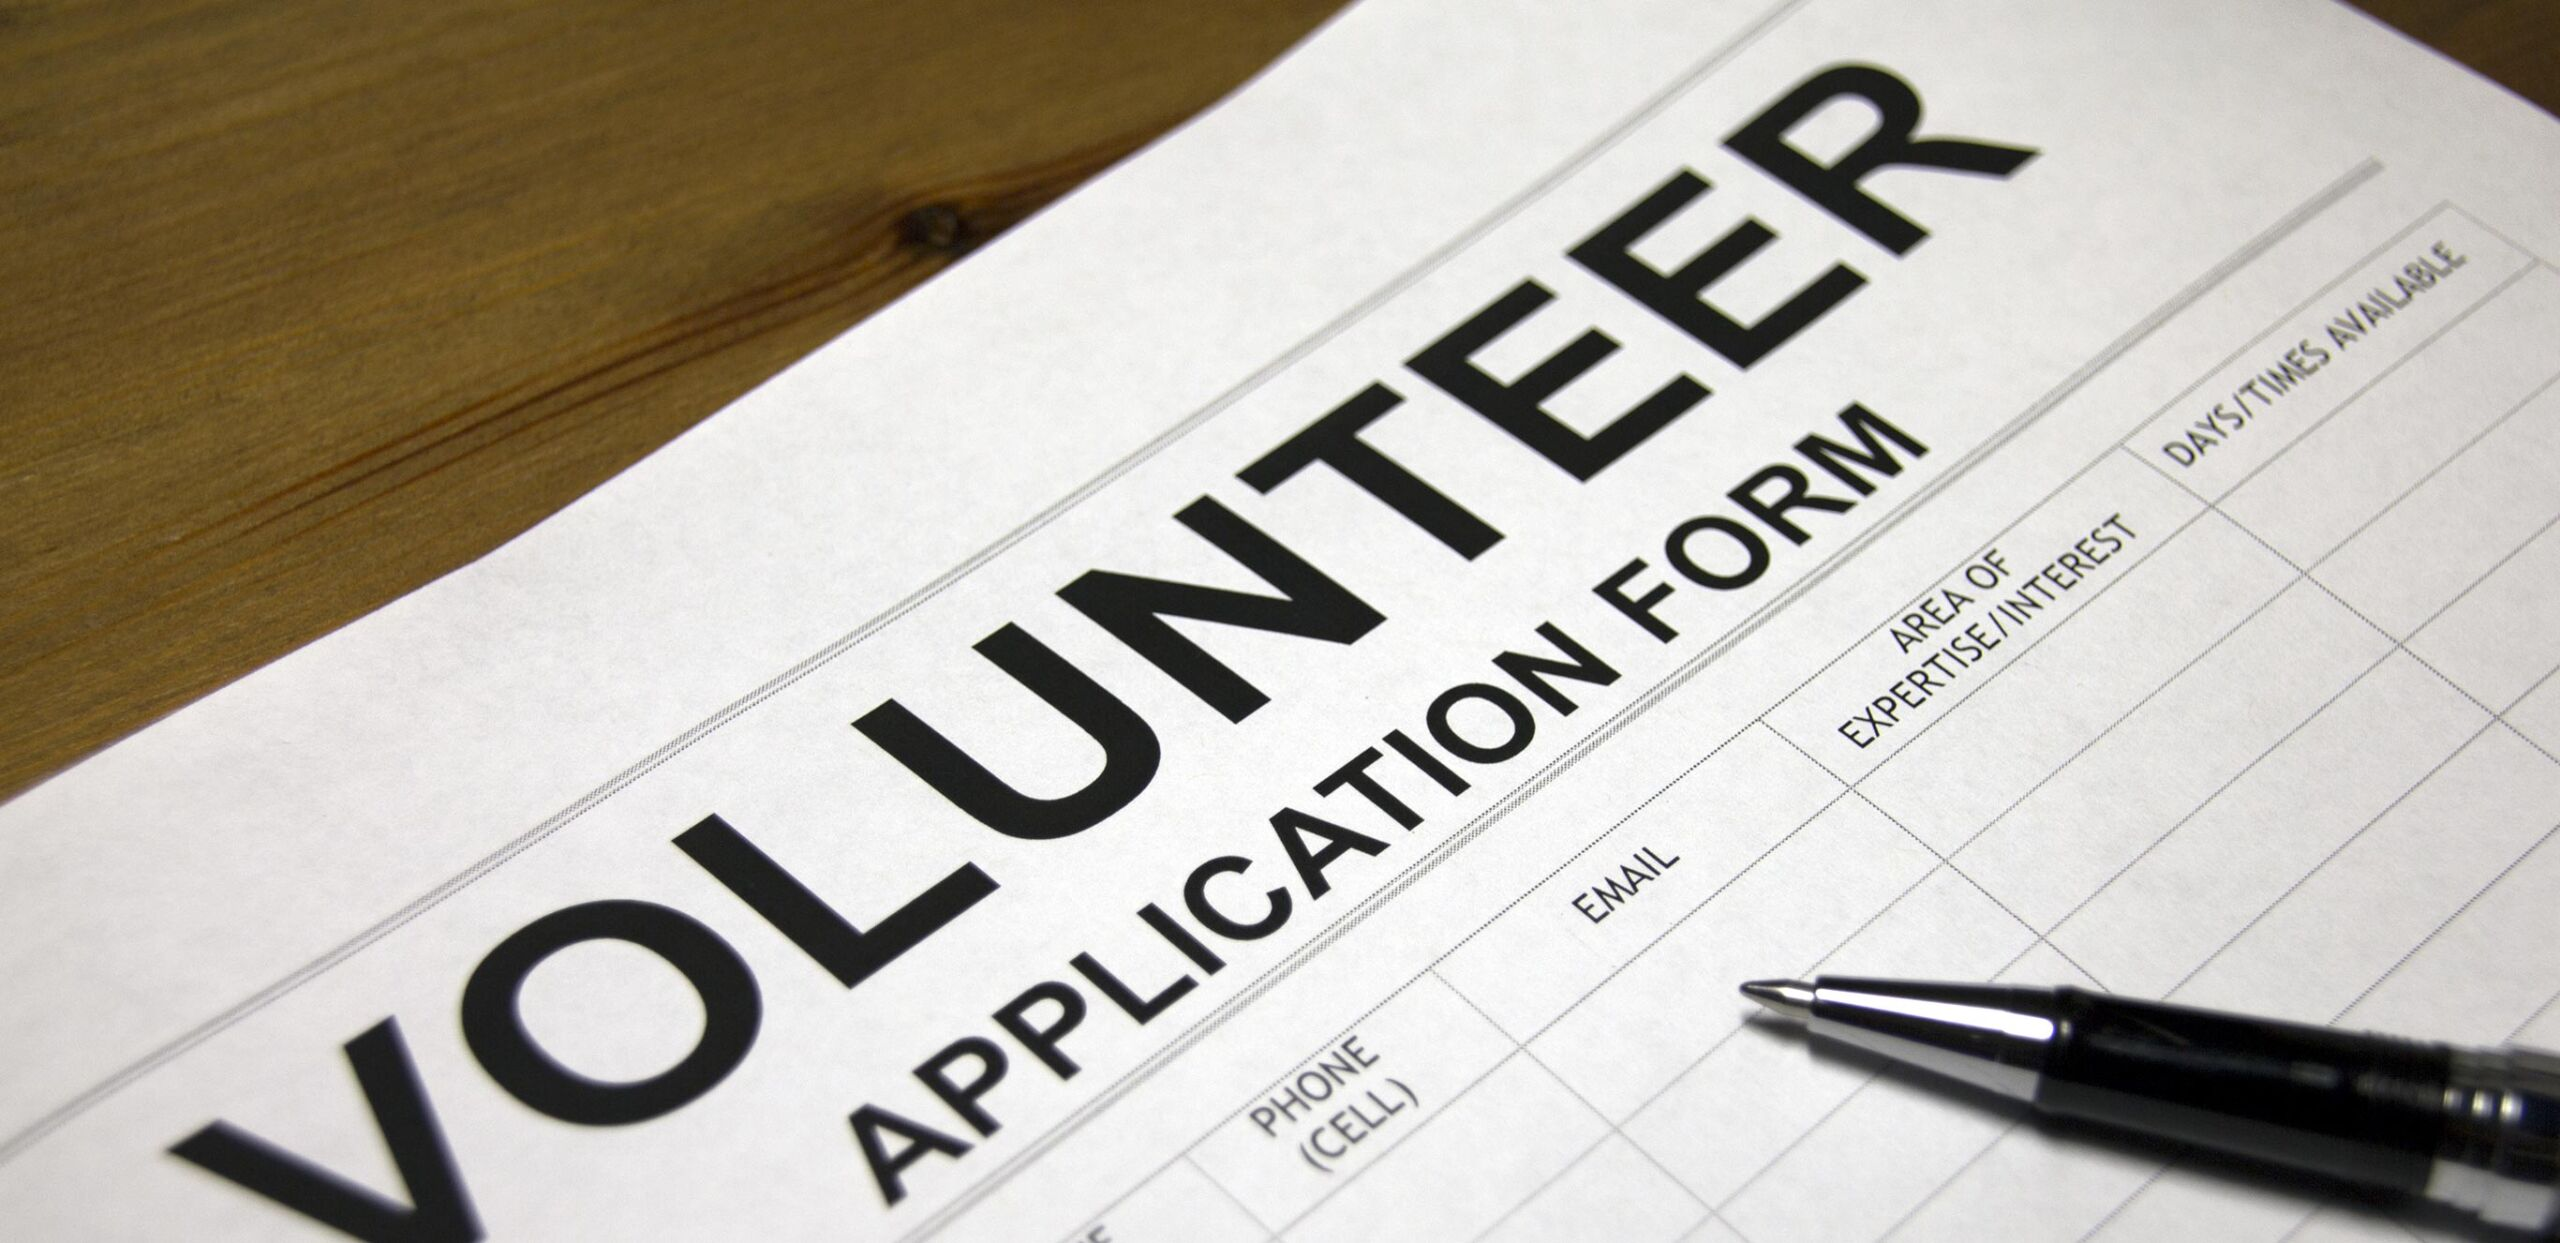 Cooley Dickinson Hospital Volunteer Application Form